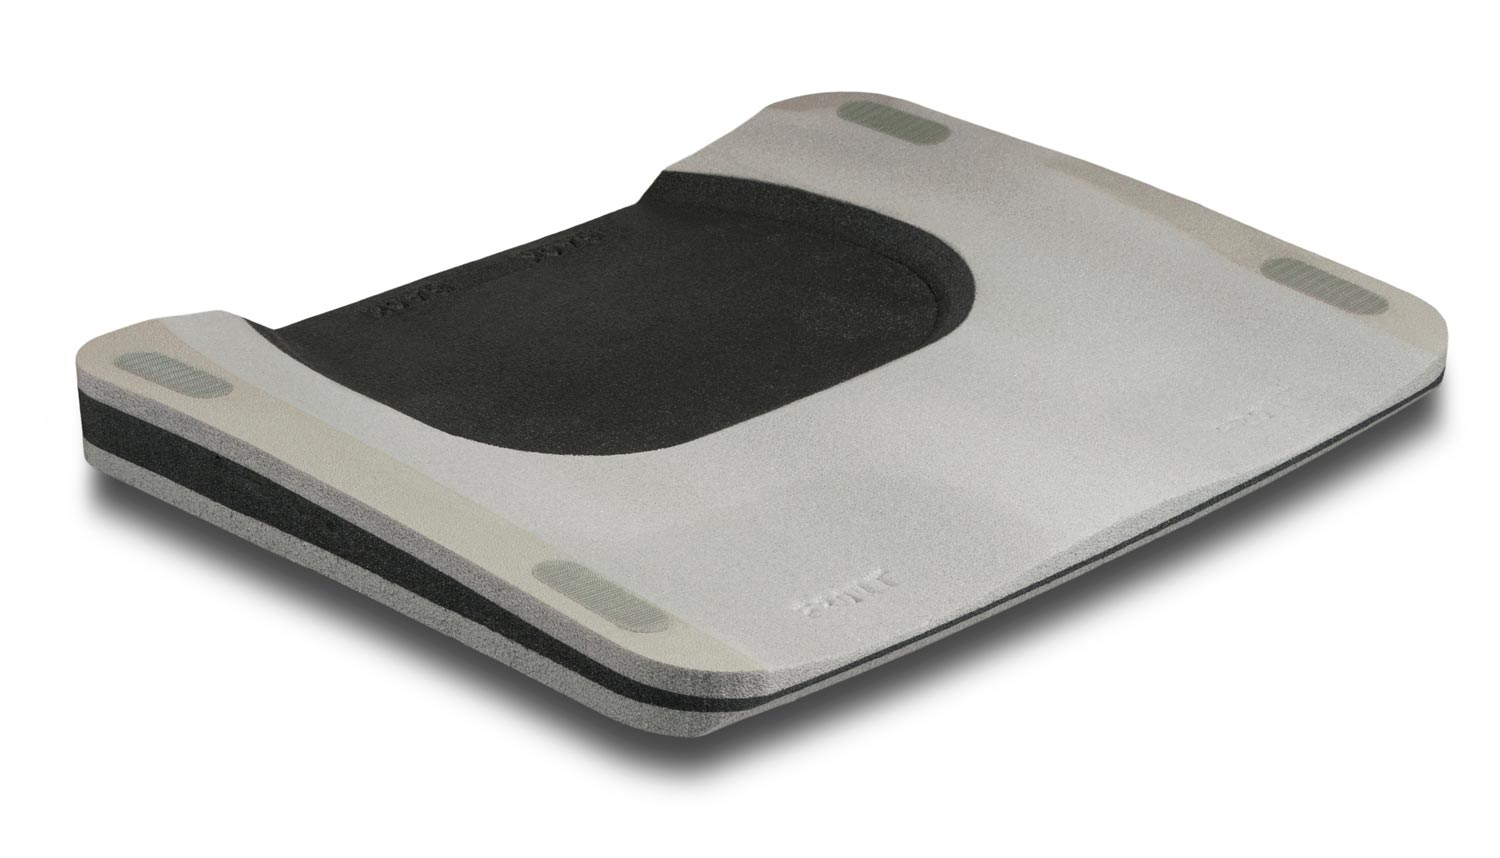 Contoured Base with Anterior Slope and 650 lb. Weight Capacity